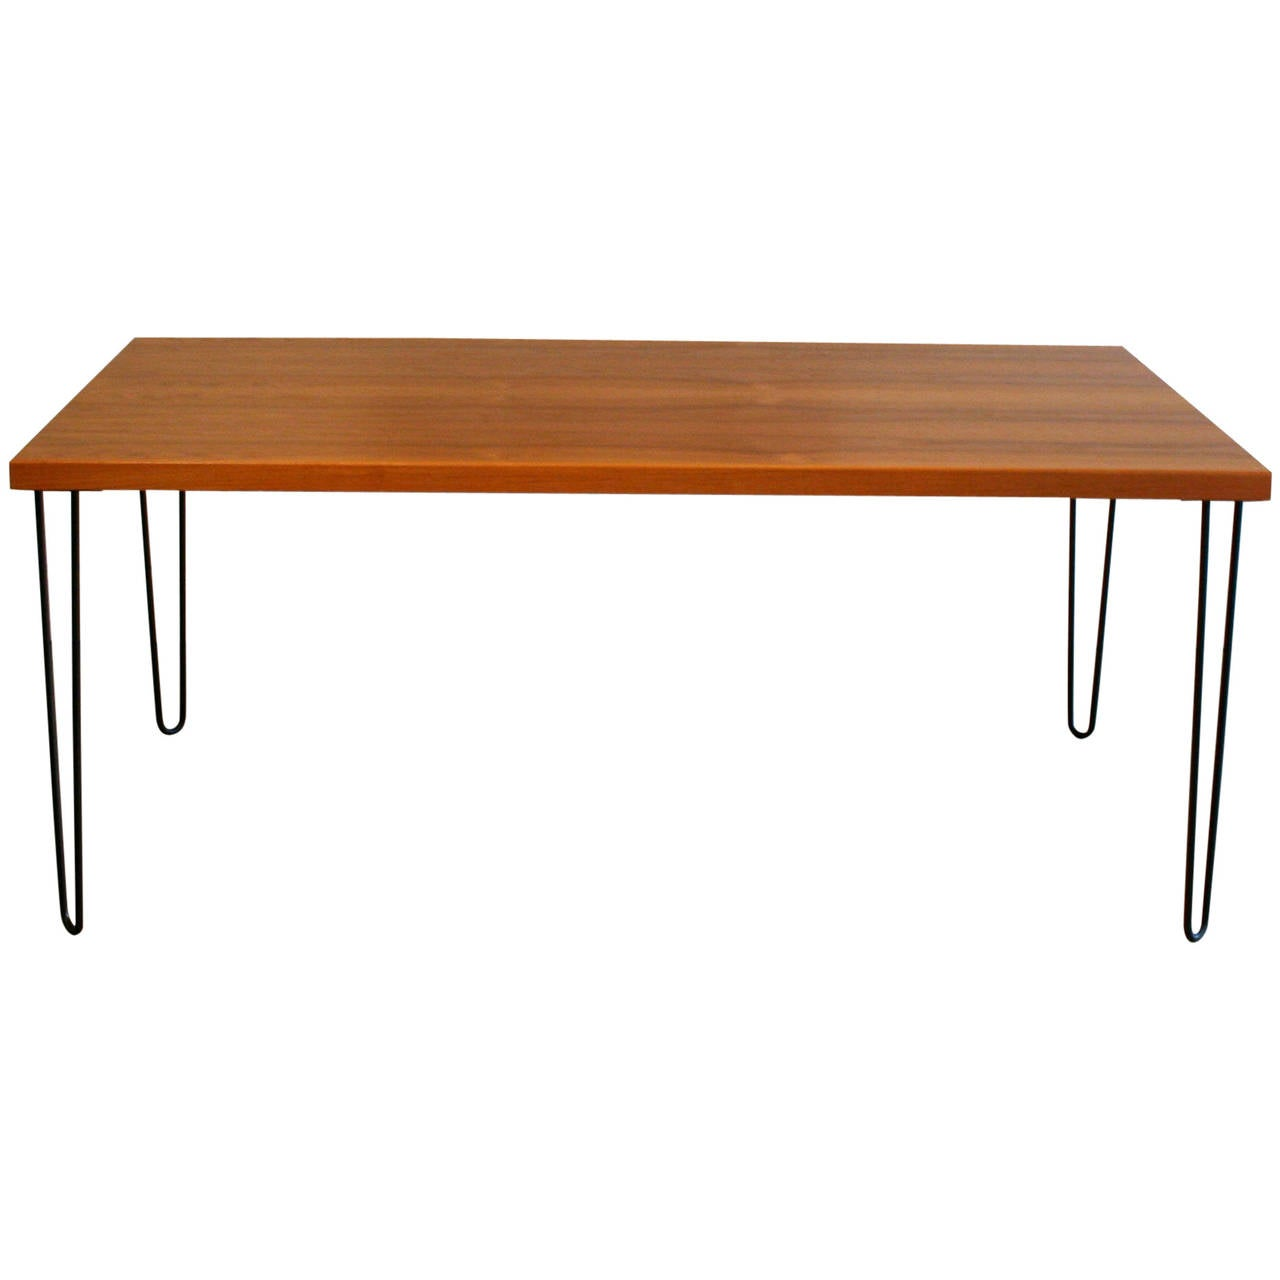 this teak dining table with metal legs is no longer available